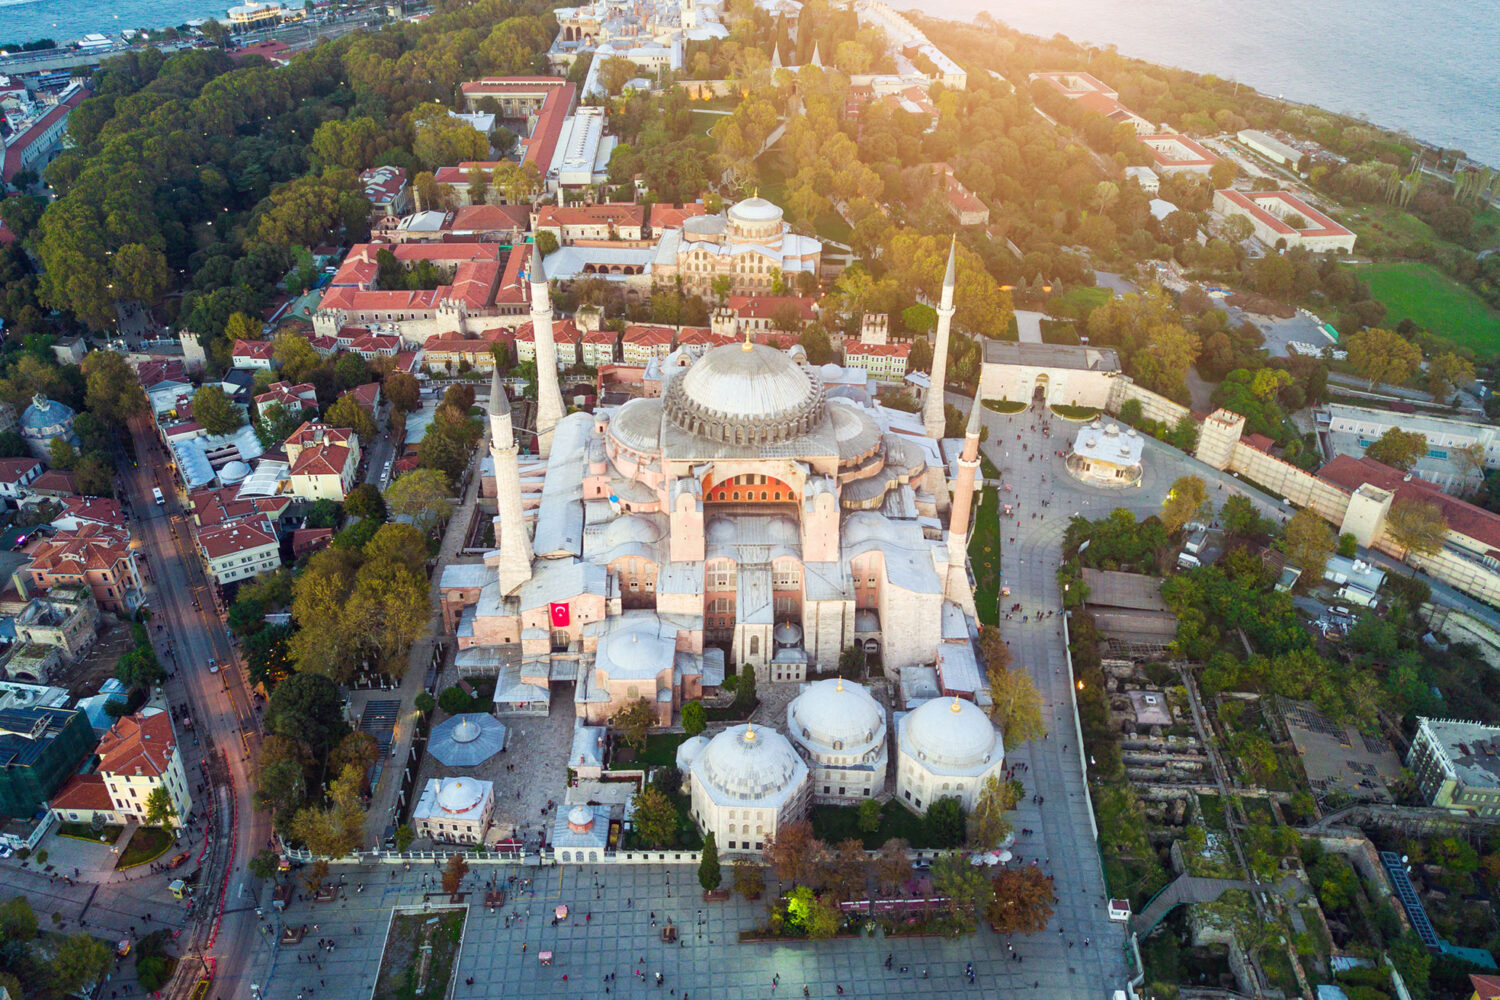 Tour Photos Hagia Sophia Museum Aerial